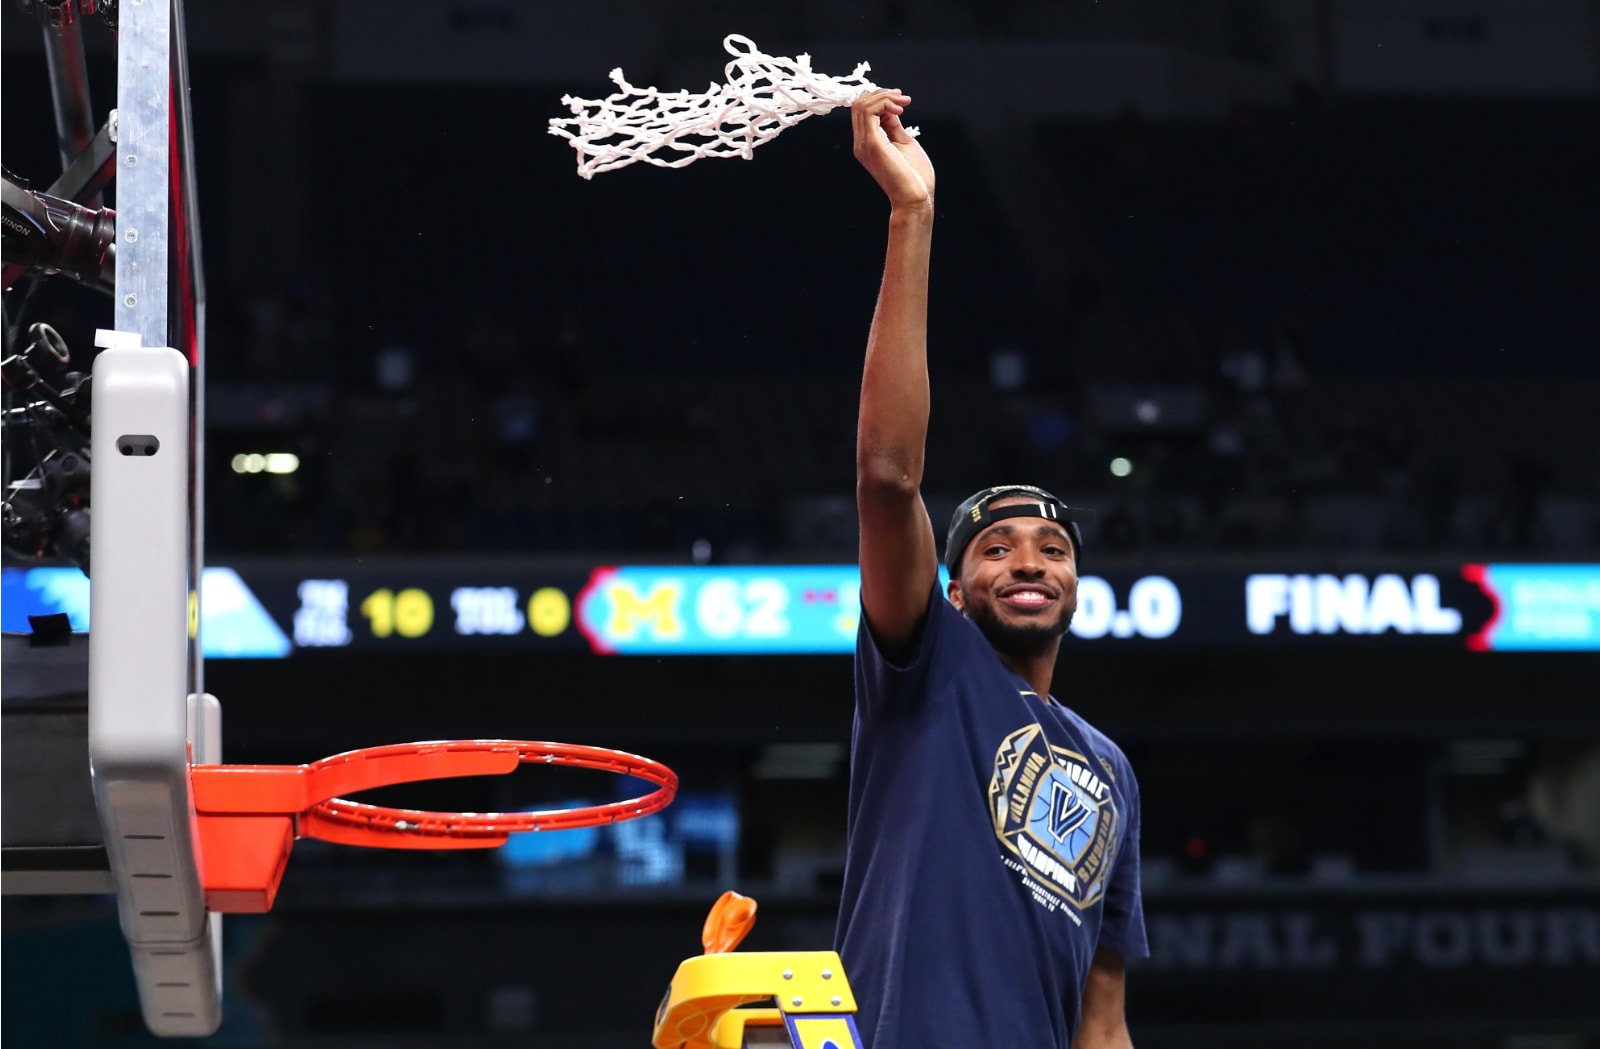 Mikal Bridges cuts down the net after winning the National Championship